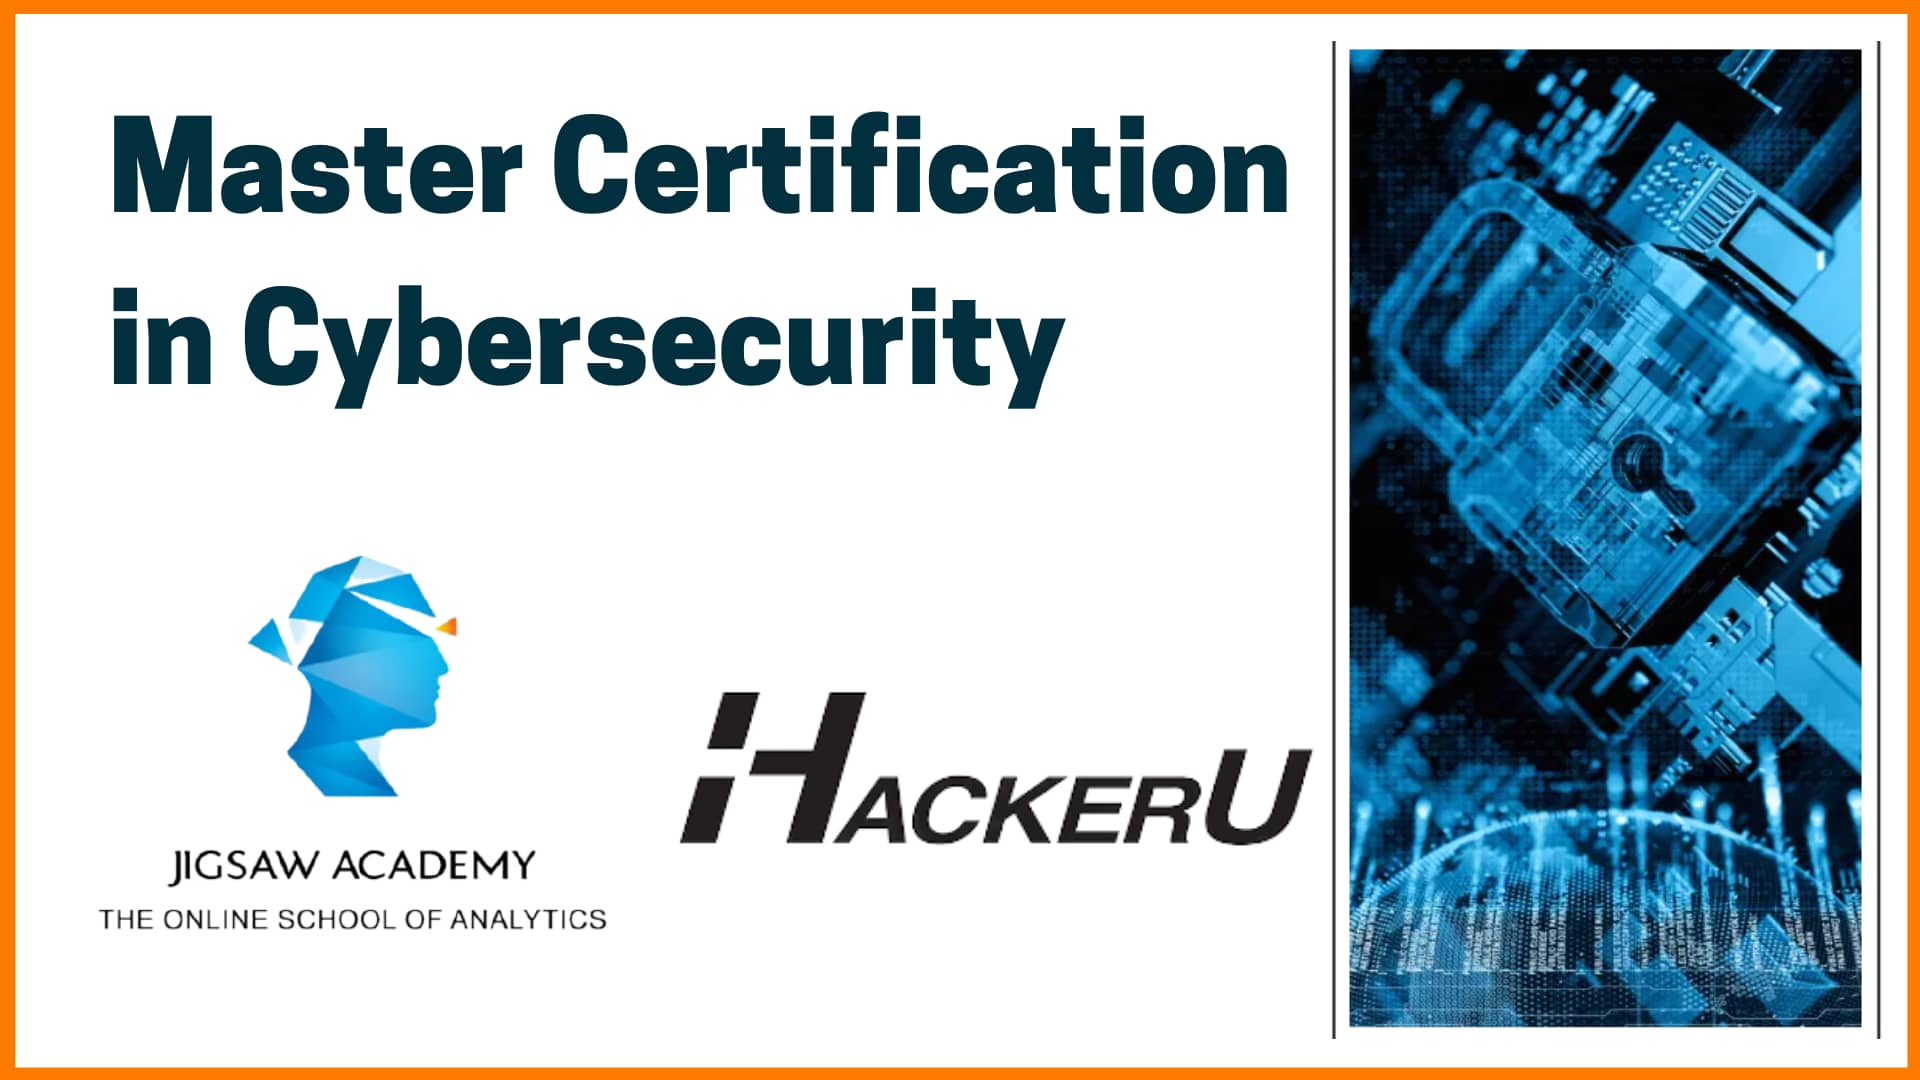 Top cybersecurity course